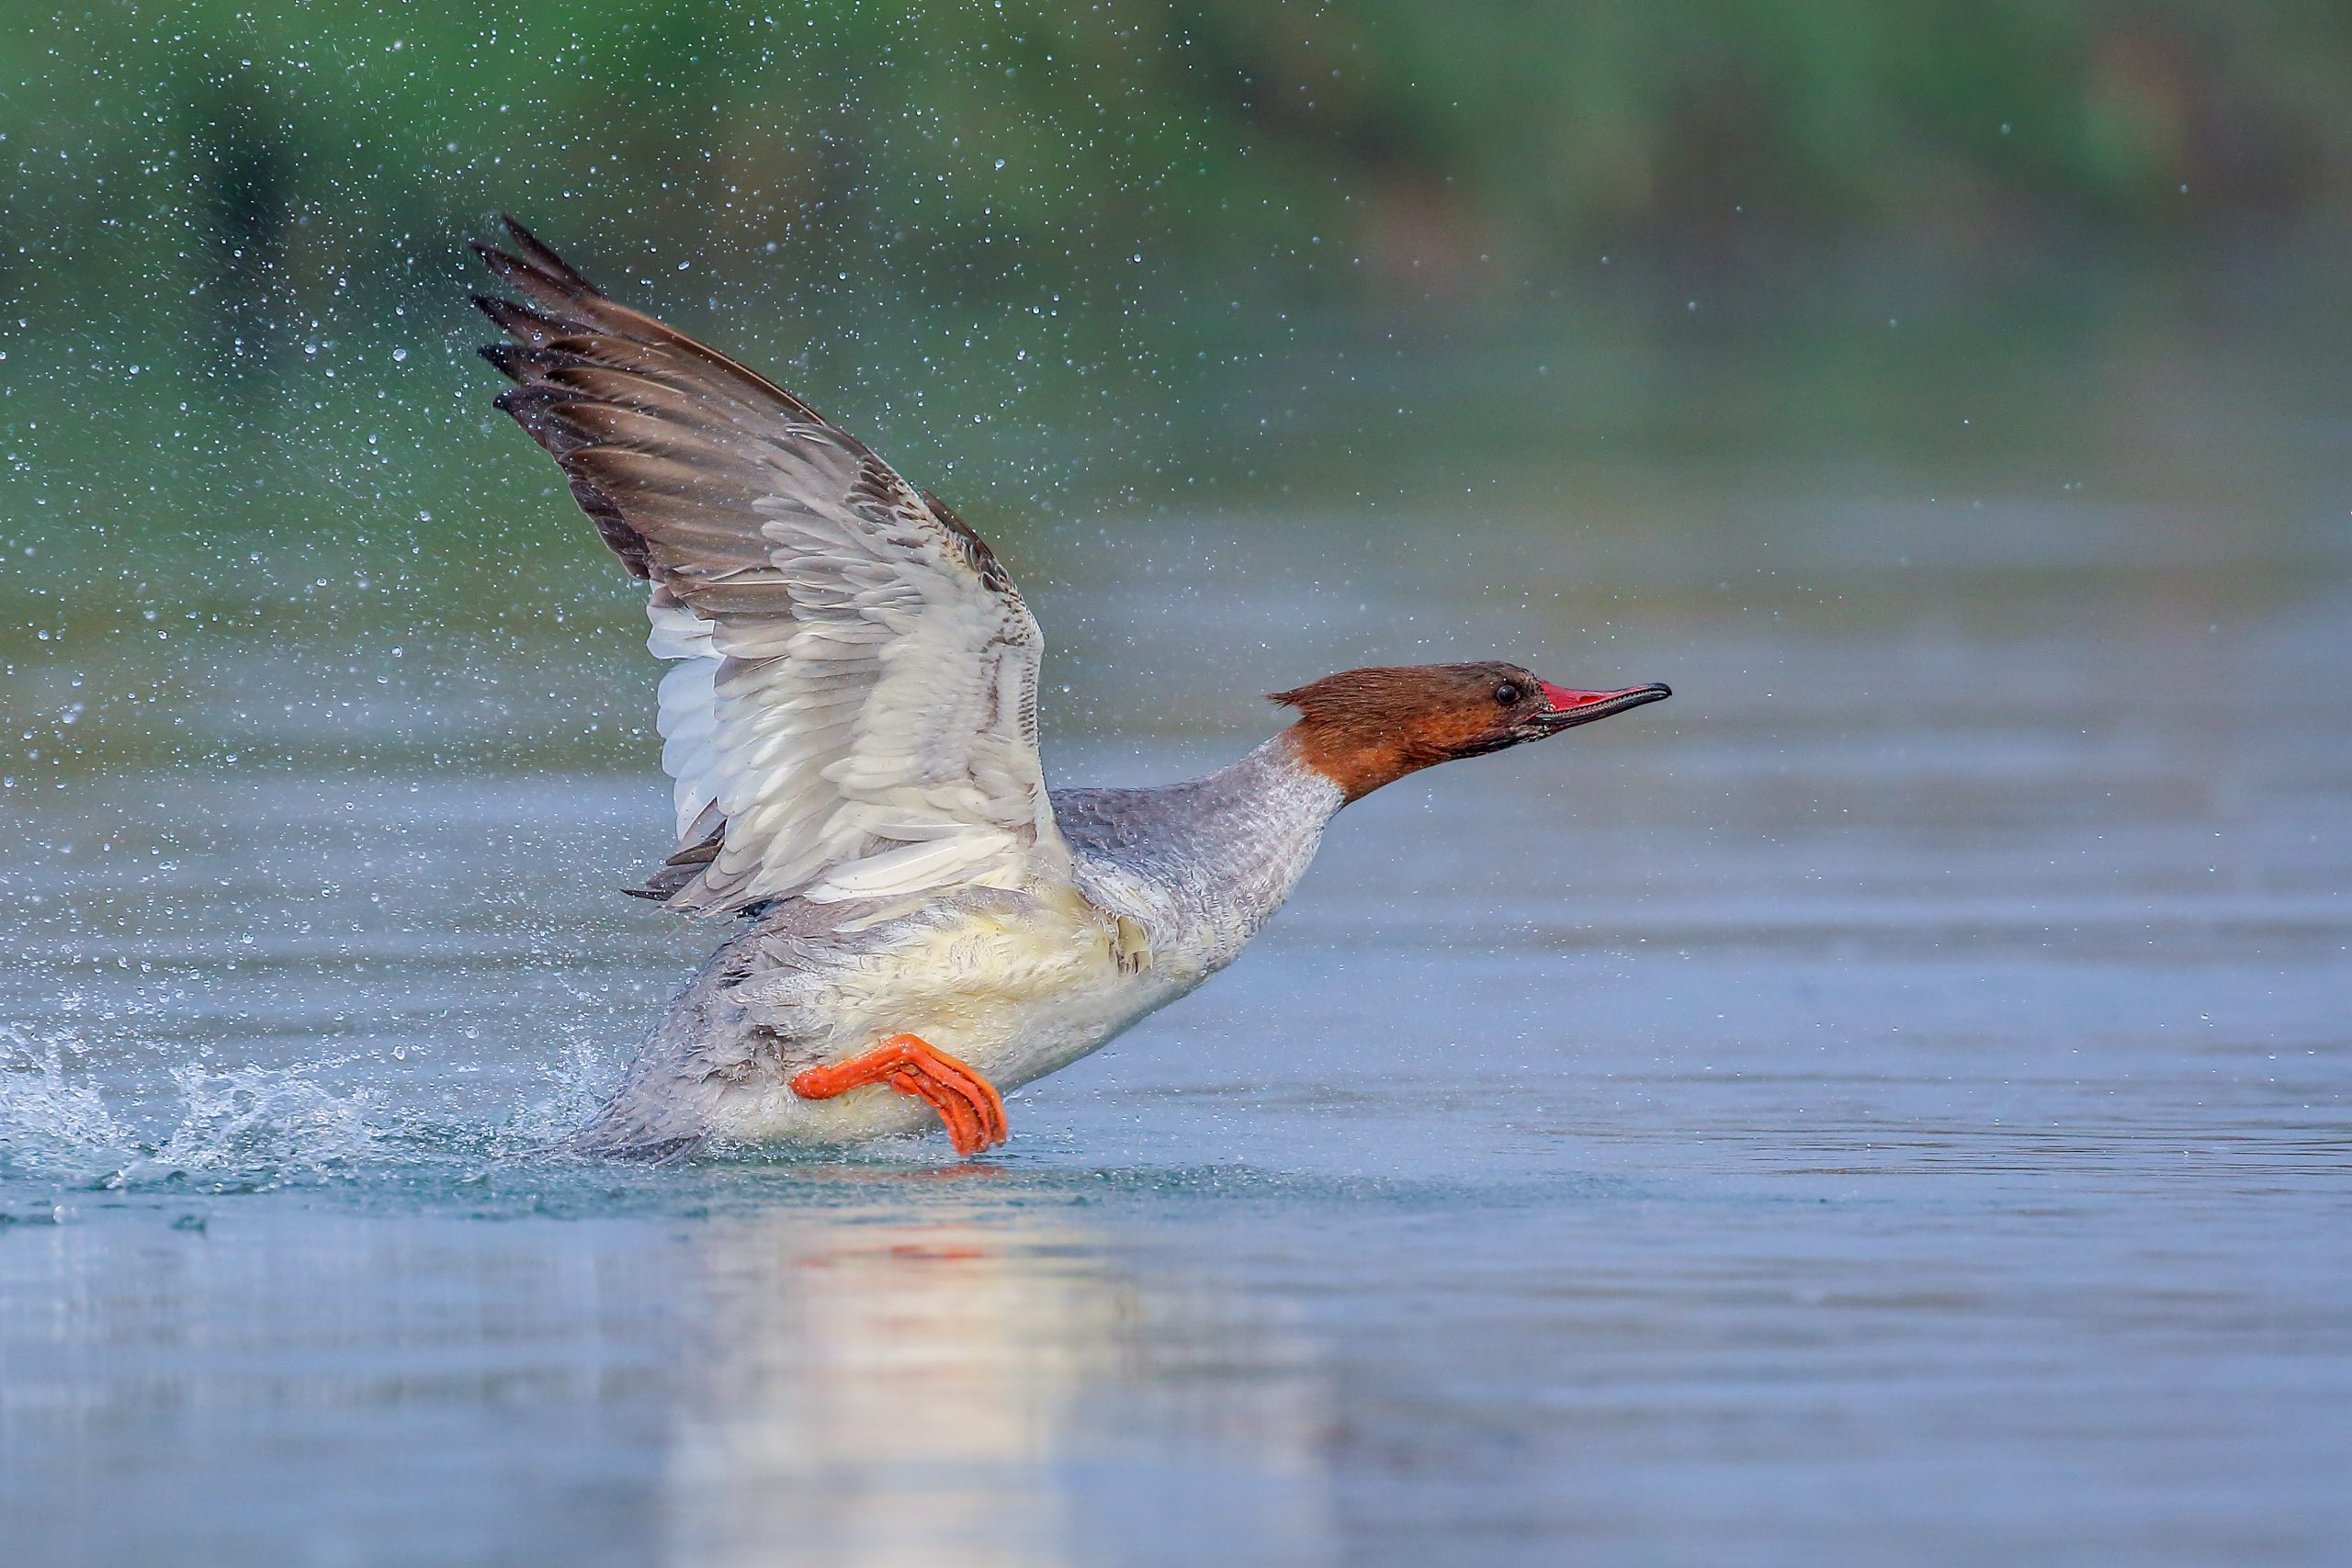 Merganser flying over the water